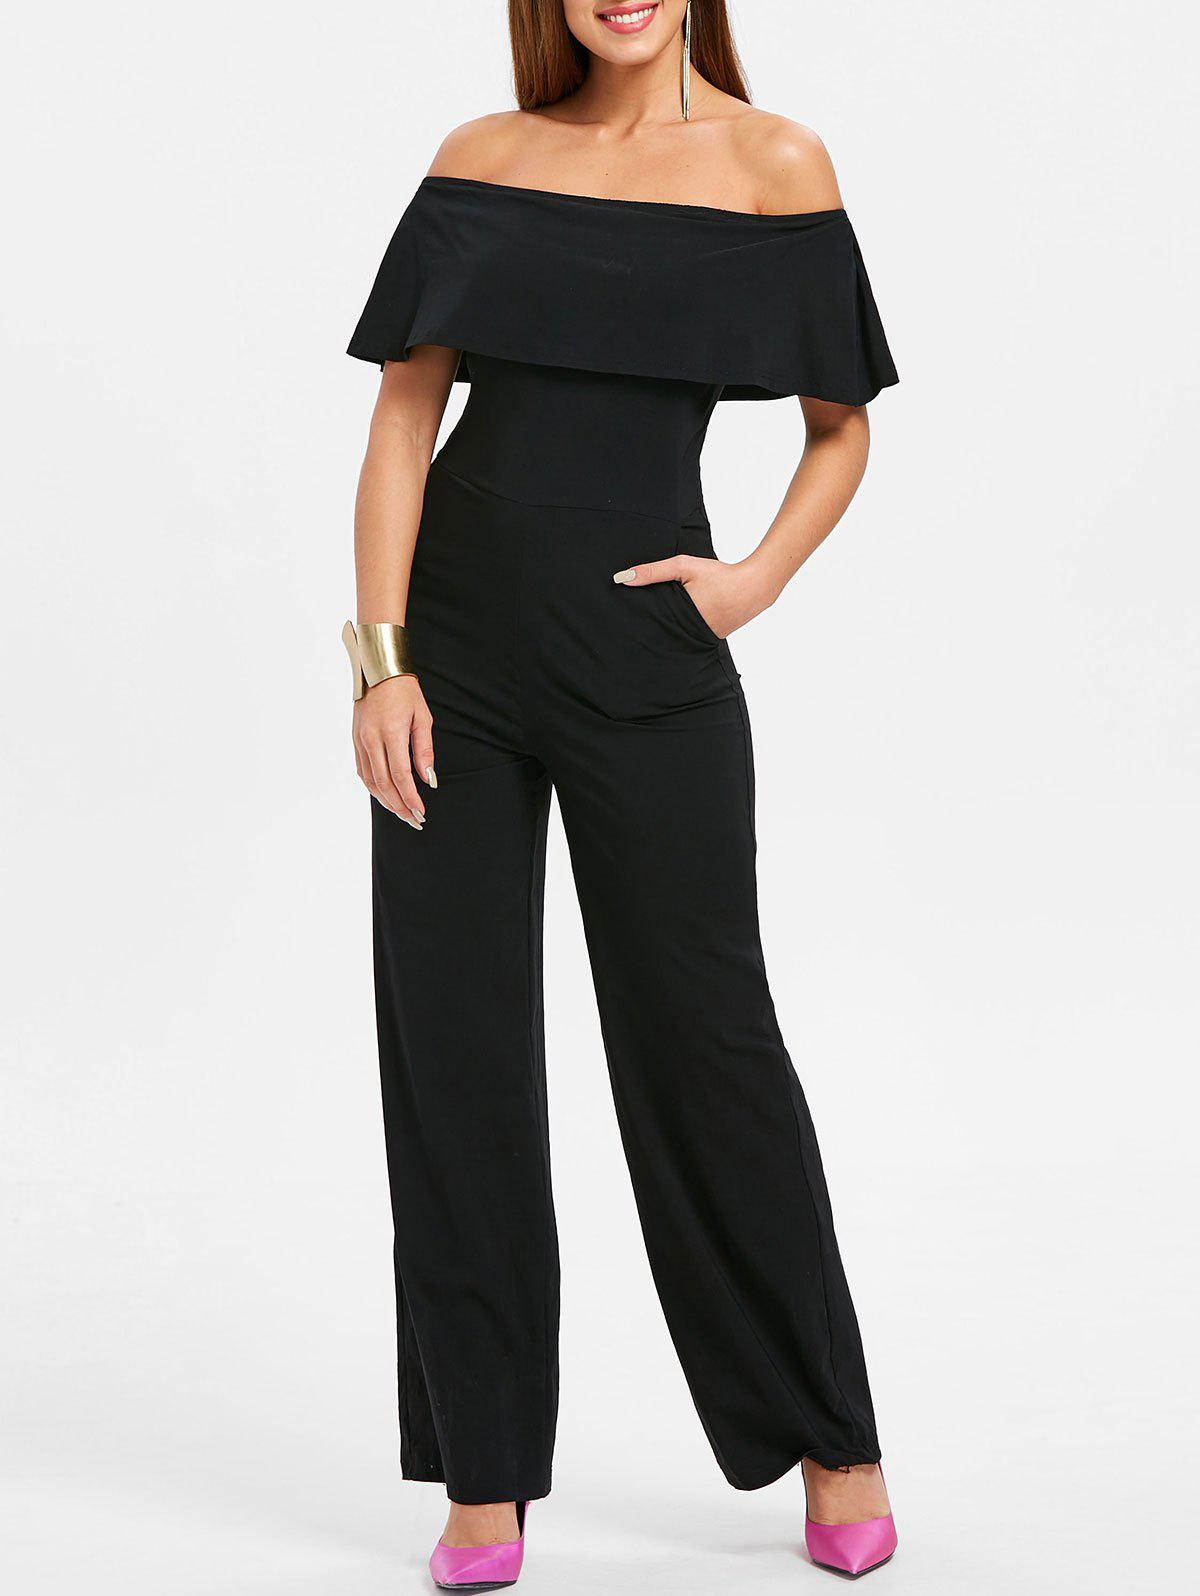 New Off The Shoulder Ruffle Insert Jumpsuit